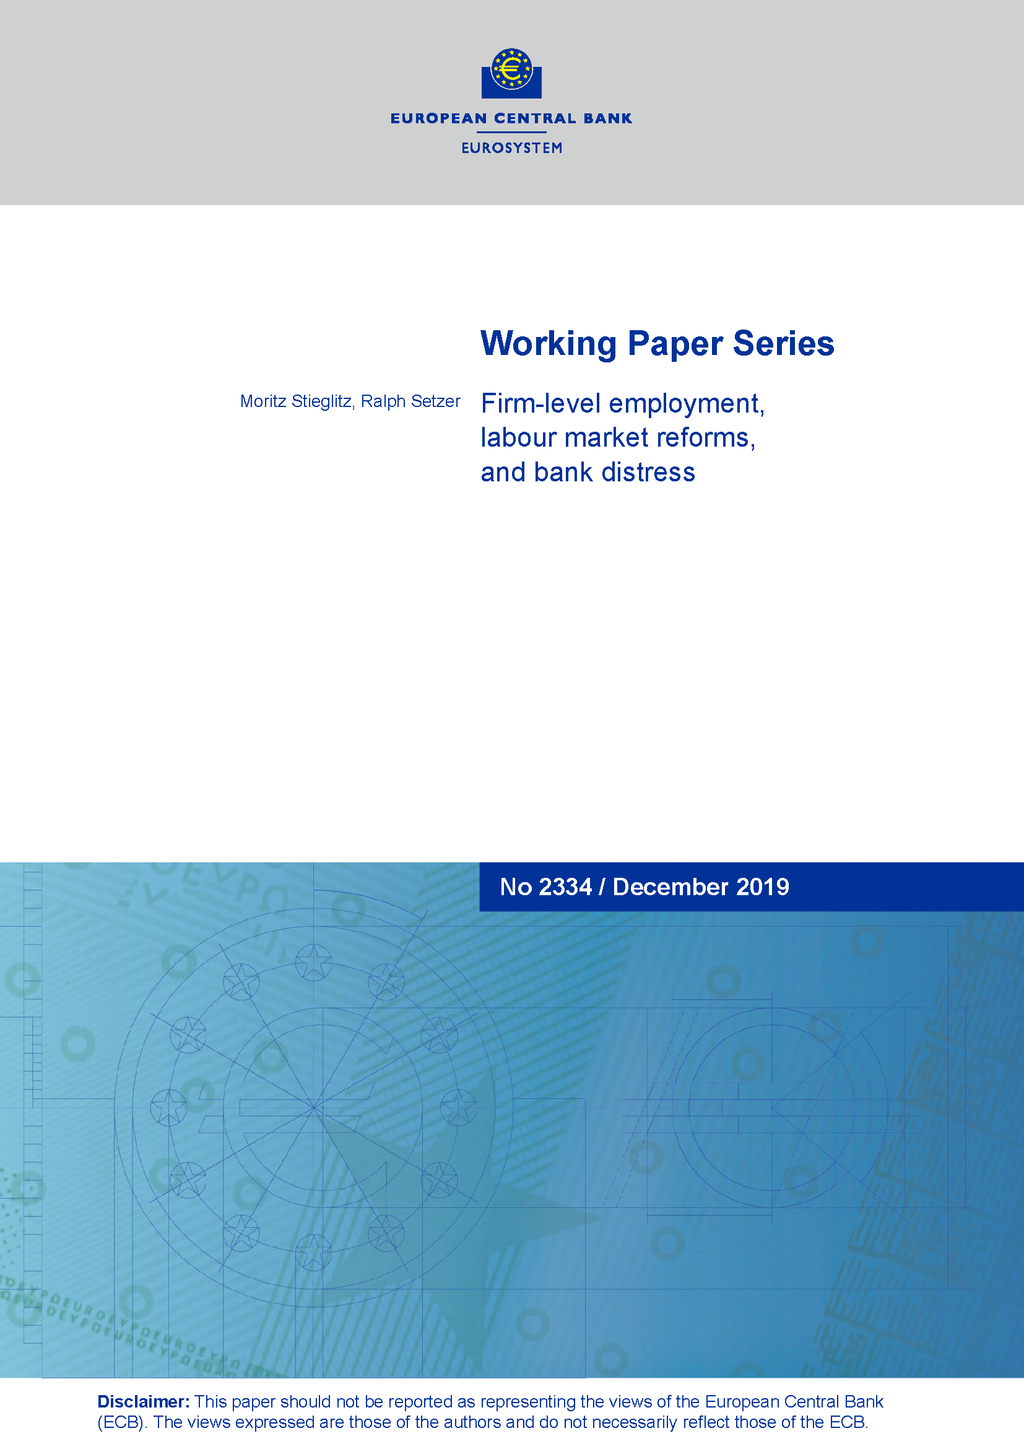 cover_ecb-working-paper-series-2019-2334.png